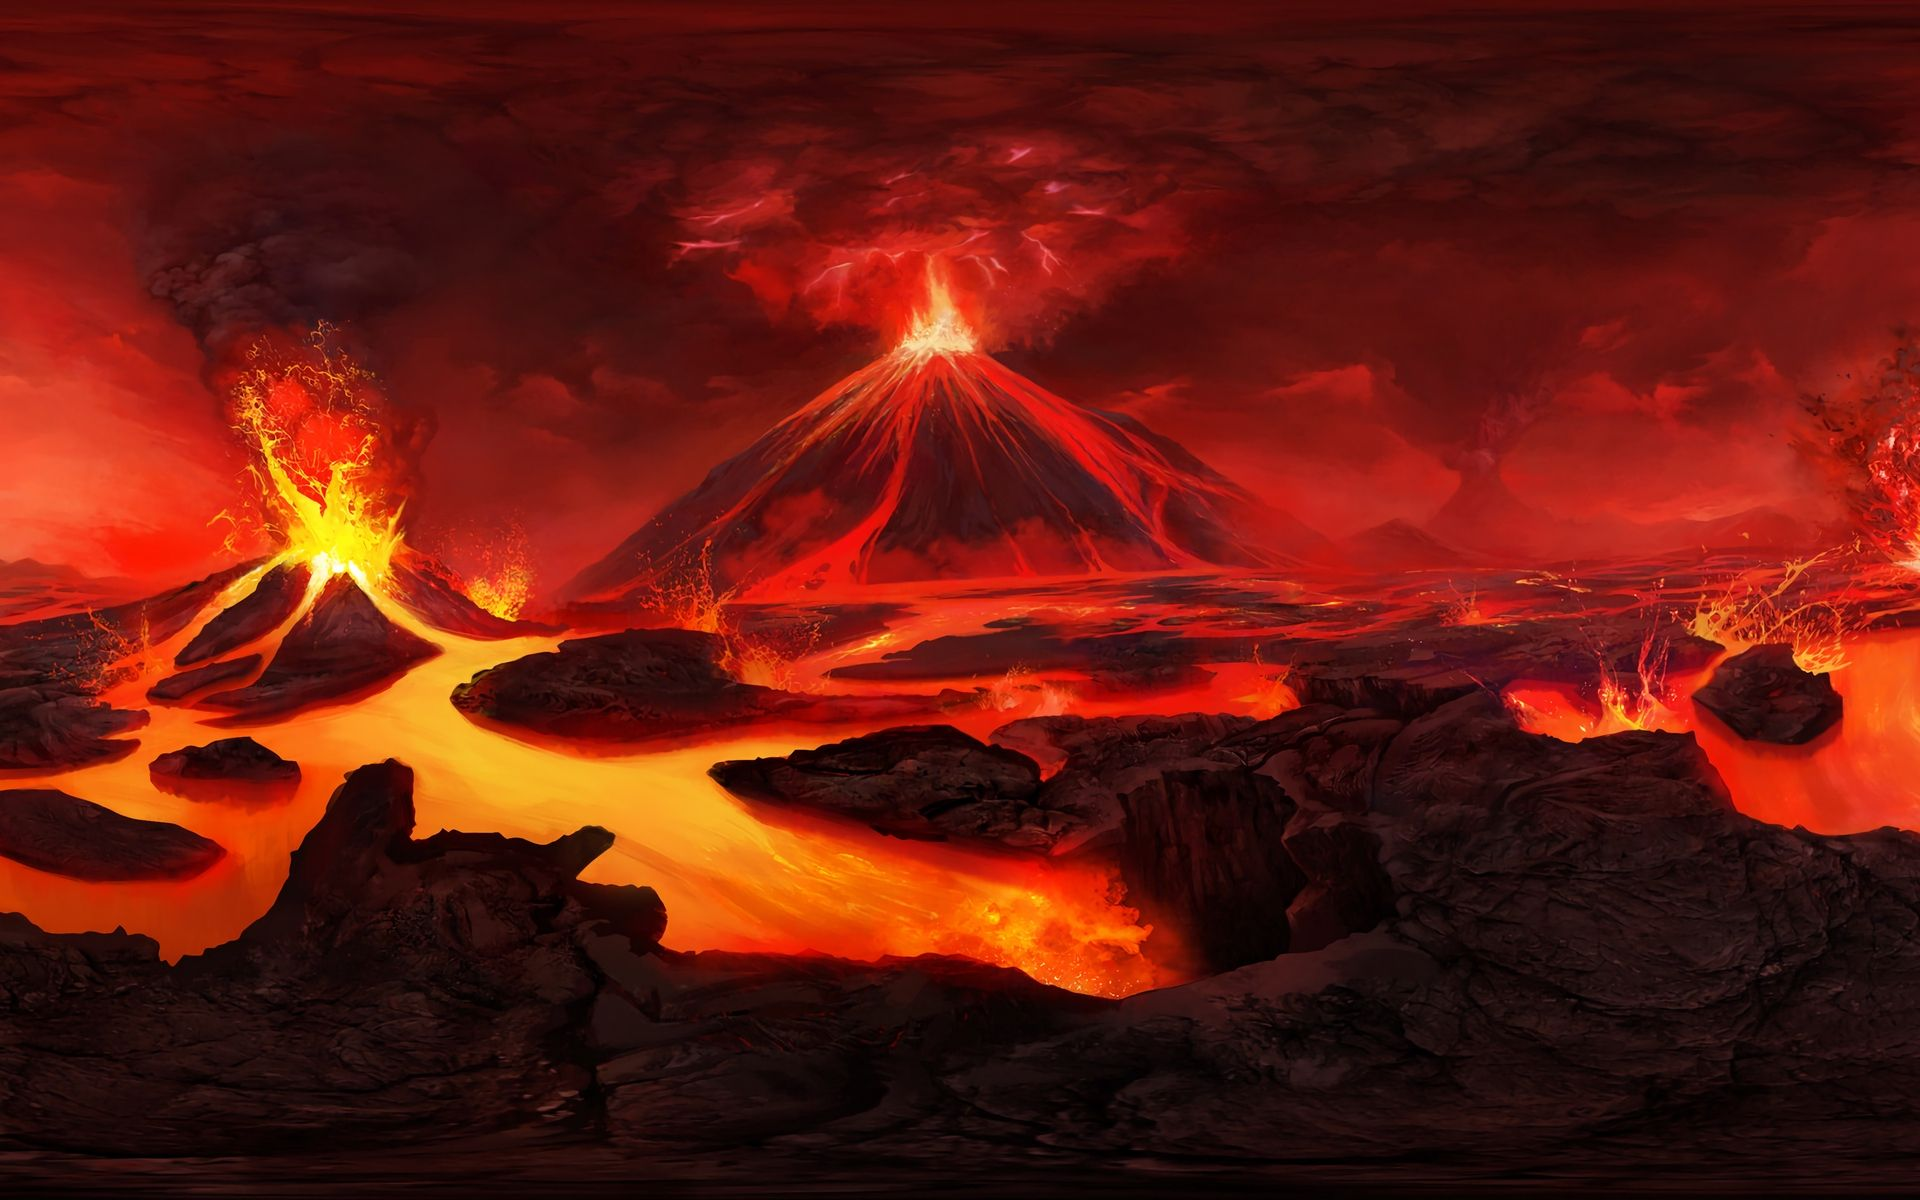 Volcano Eruption Hd Wallpaper Volcano Wallpaper Landscape Wallpaper Hd Wallpaper